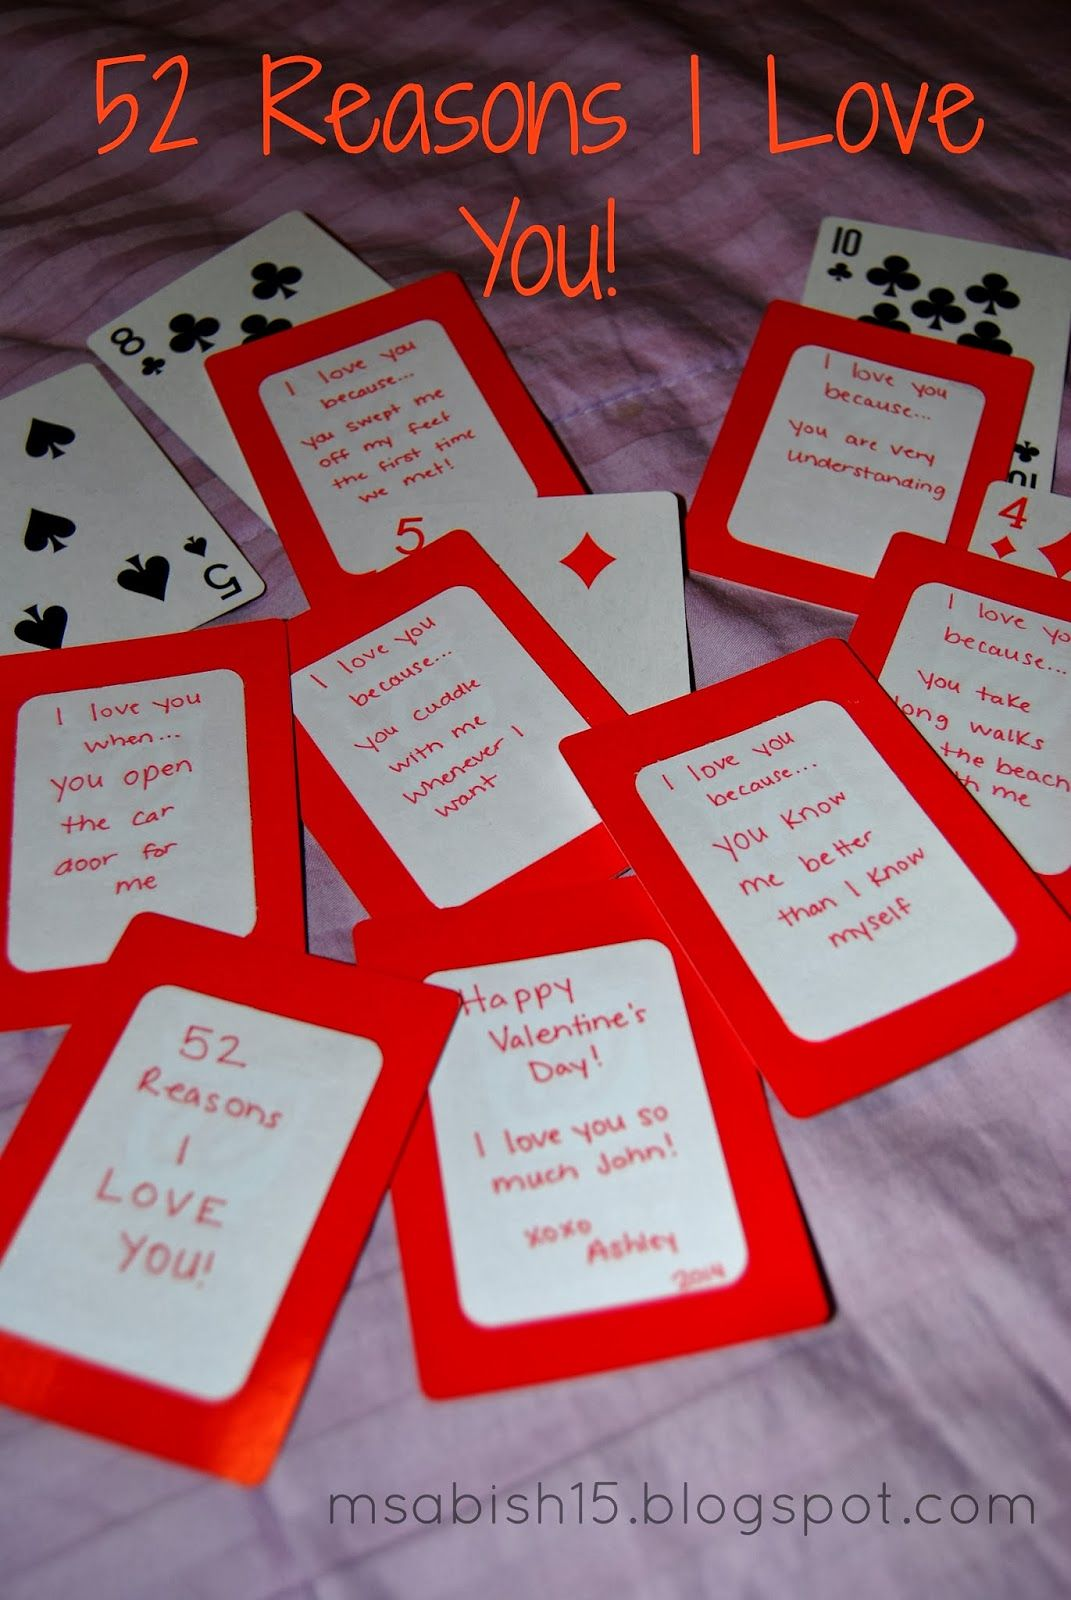 How To Play 21 With Deck Of Cards - arxiusarquitectura Inside 52 Things I Love About You Deck Of Cards Template